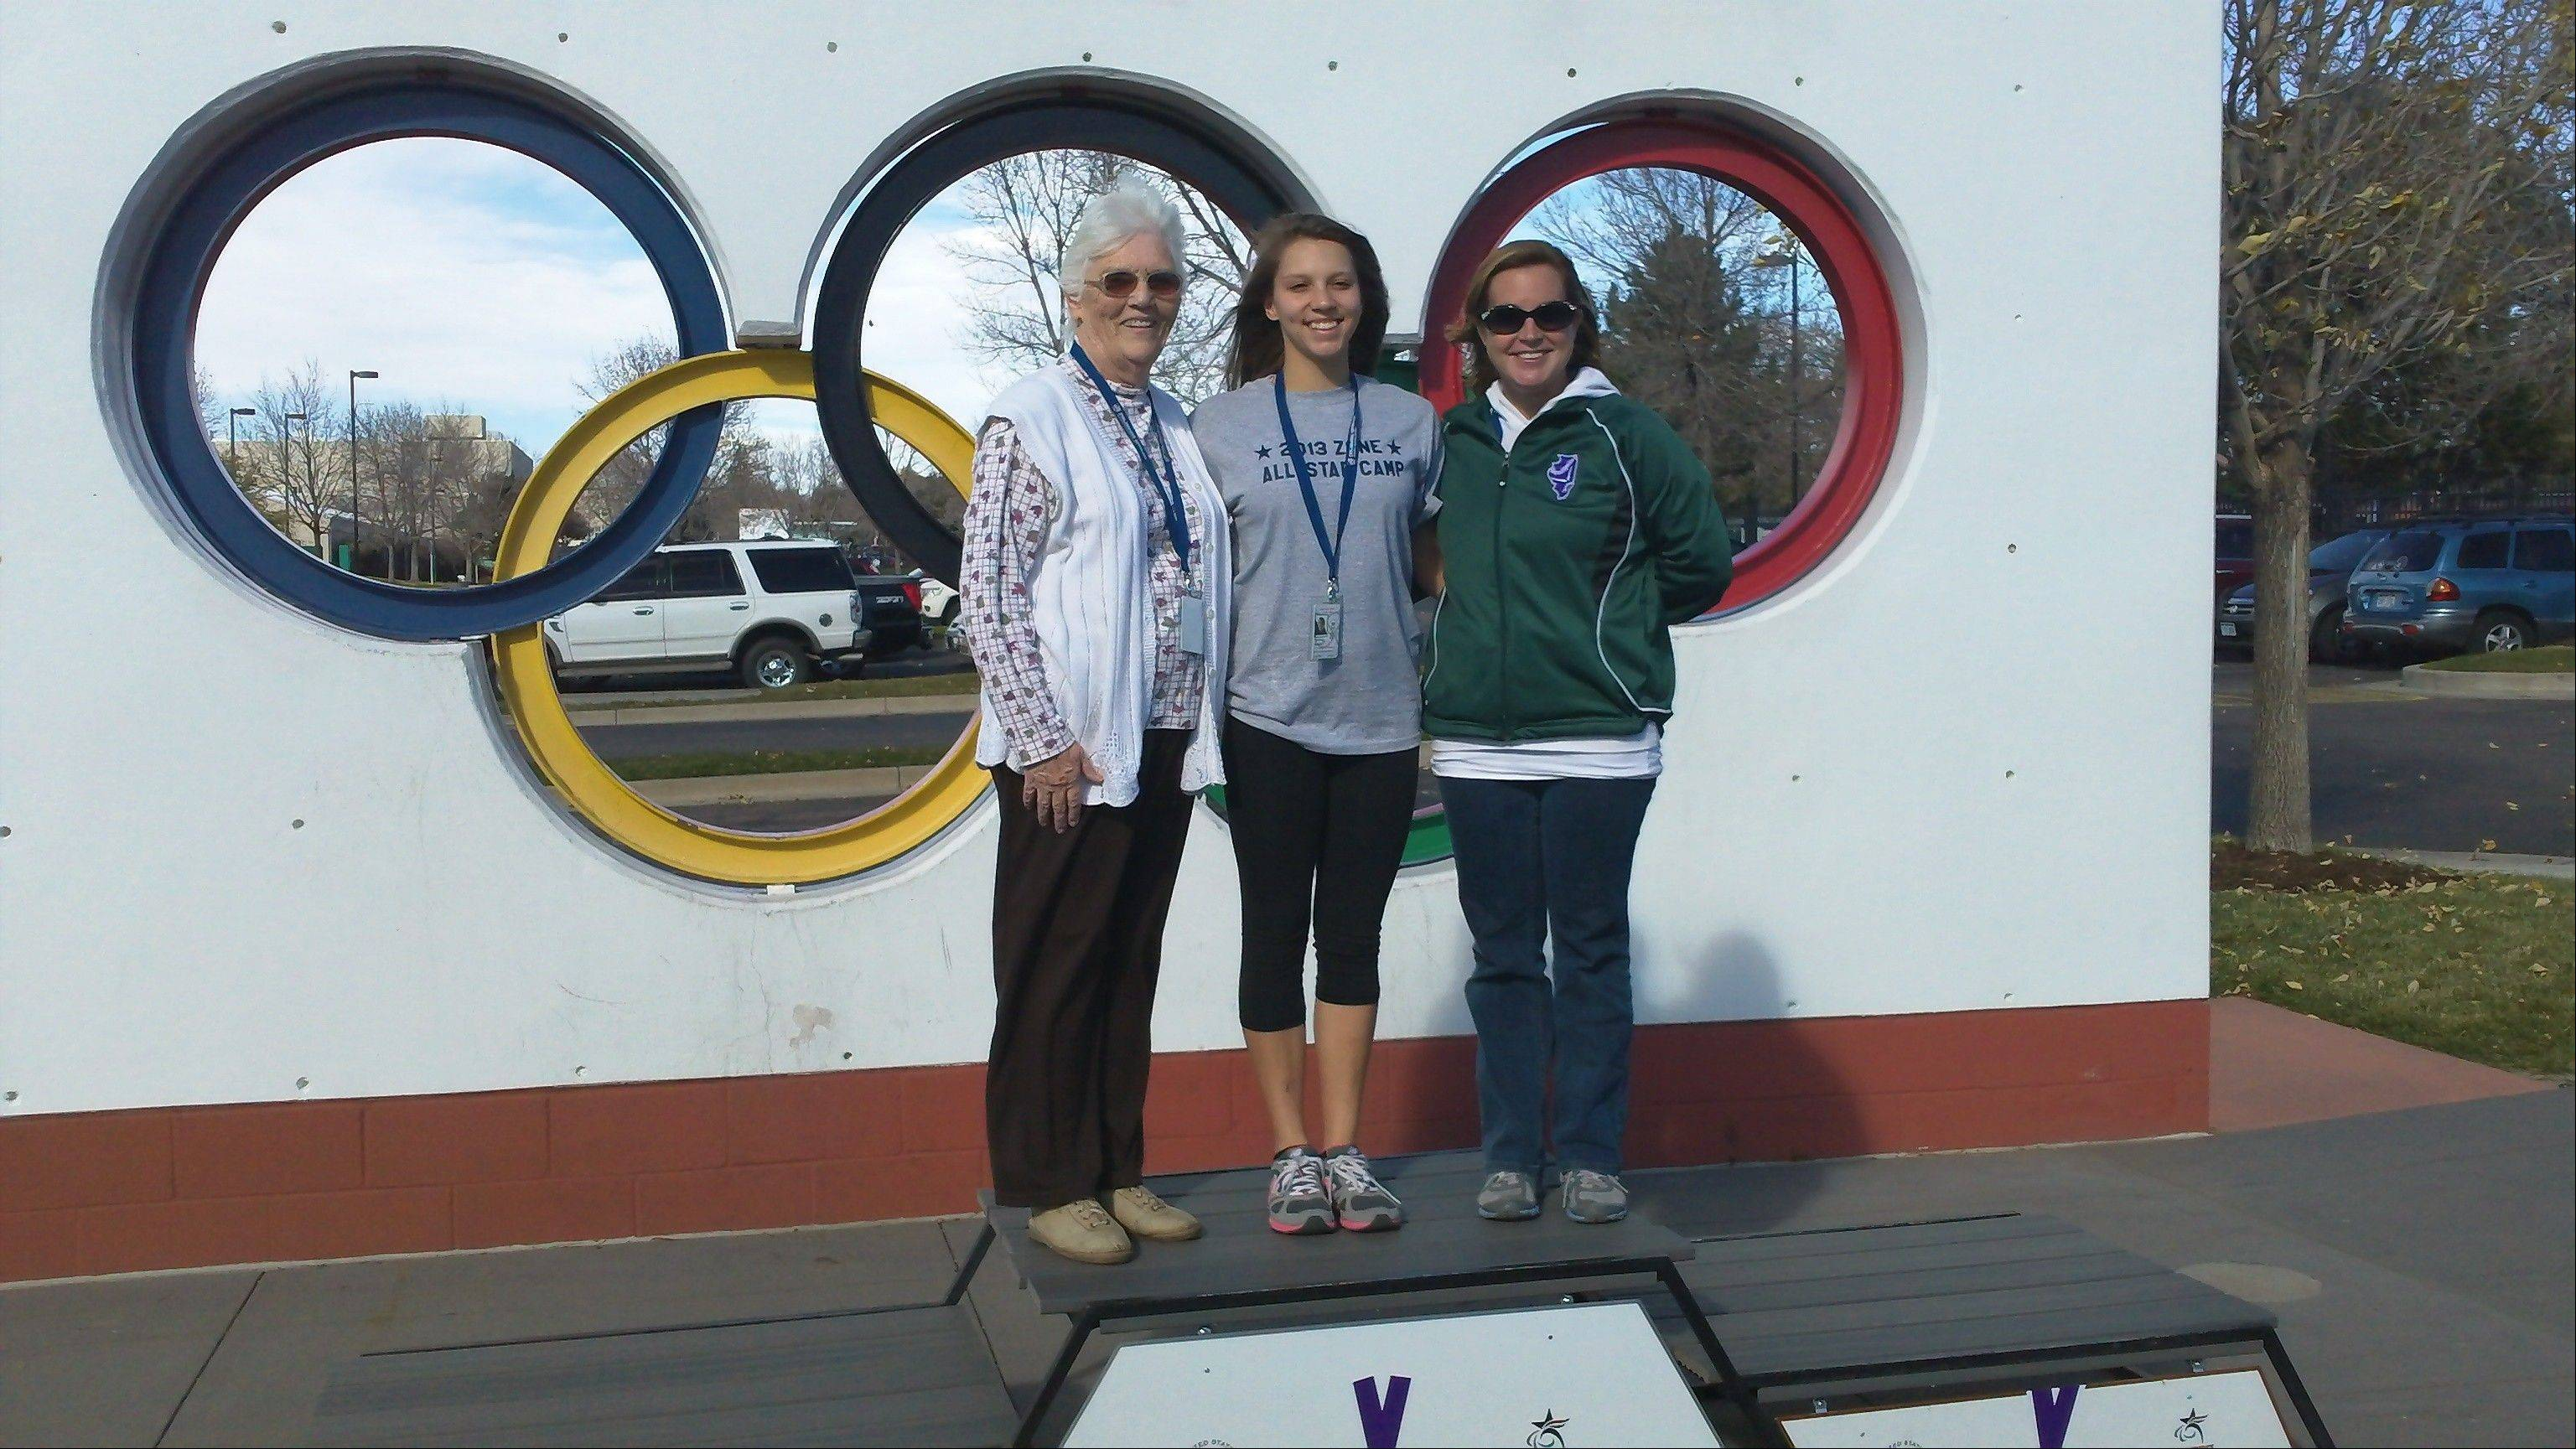 Pictured, from left, at the Olympic Training Center in Colorado, are: Head Coach Nan Zack of Mount Prospect, athlete Sasha Boudko of Wadsworth, and coach Veronica Morgan of Rolling Meadows.